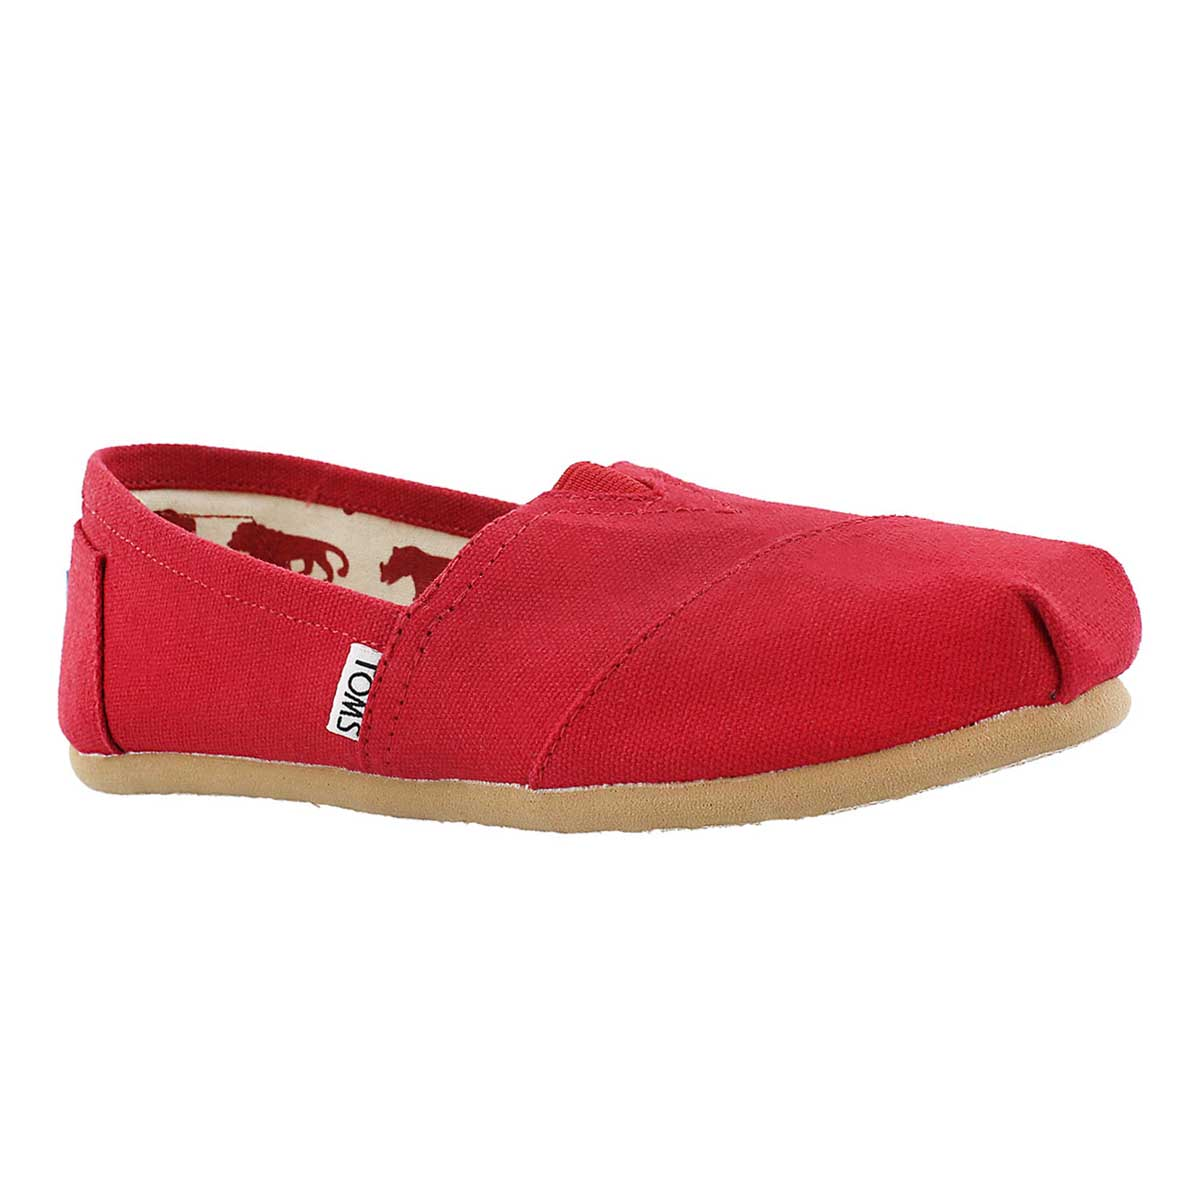 Women's Classic Canvas Loafer - Red